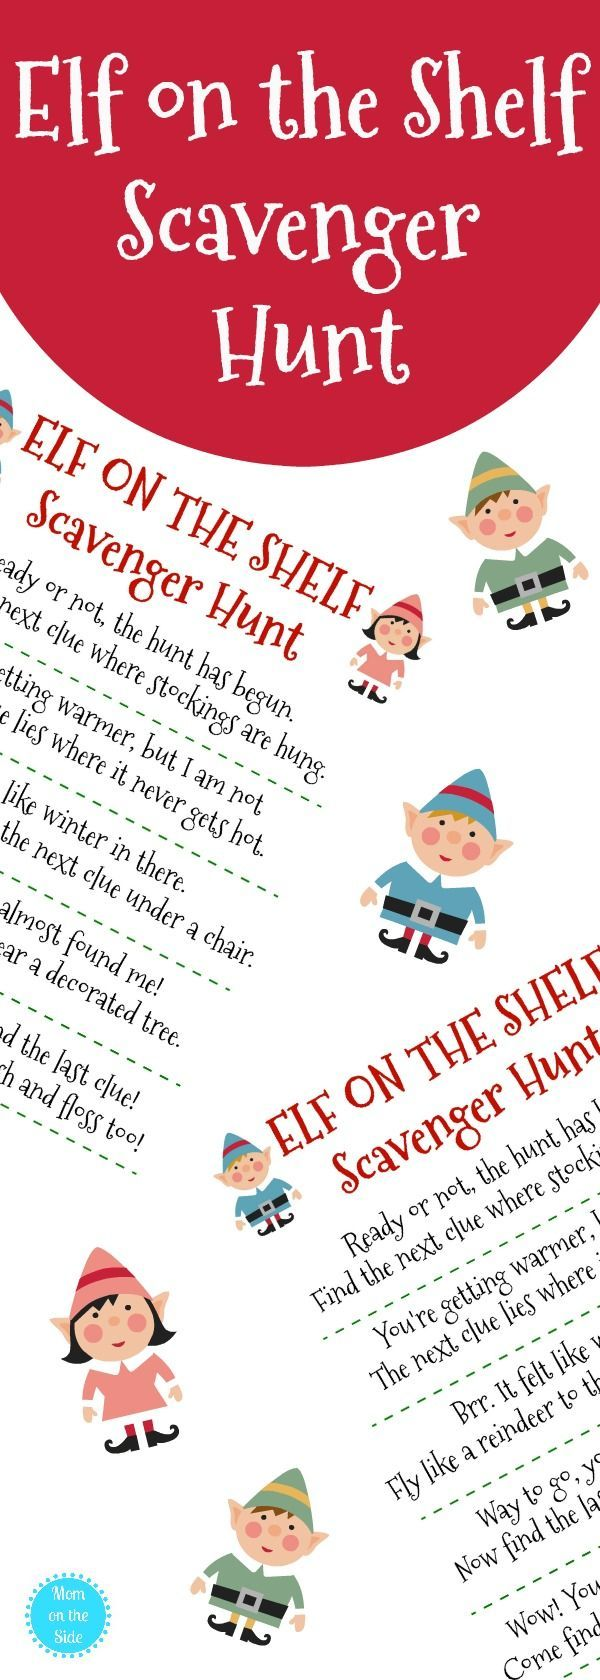 Need elf on the shelf ideas for your elf on the shelf arrival? Grab this free printable Elf on the Shelf Scavenger Hunt for Christmas the kids will love! #elfontheshelf #elfontheshelfideas #christmas #scavengerhunt #christmastime